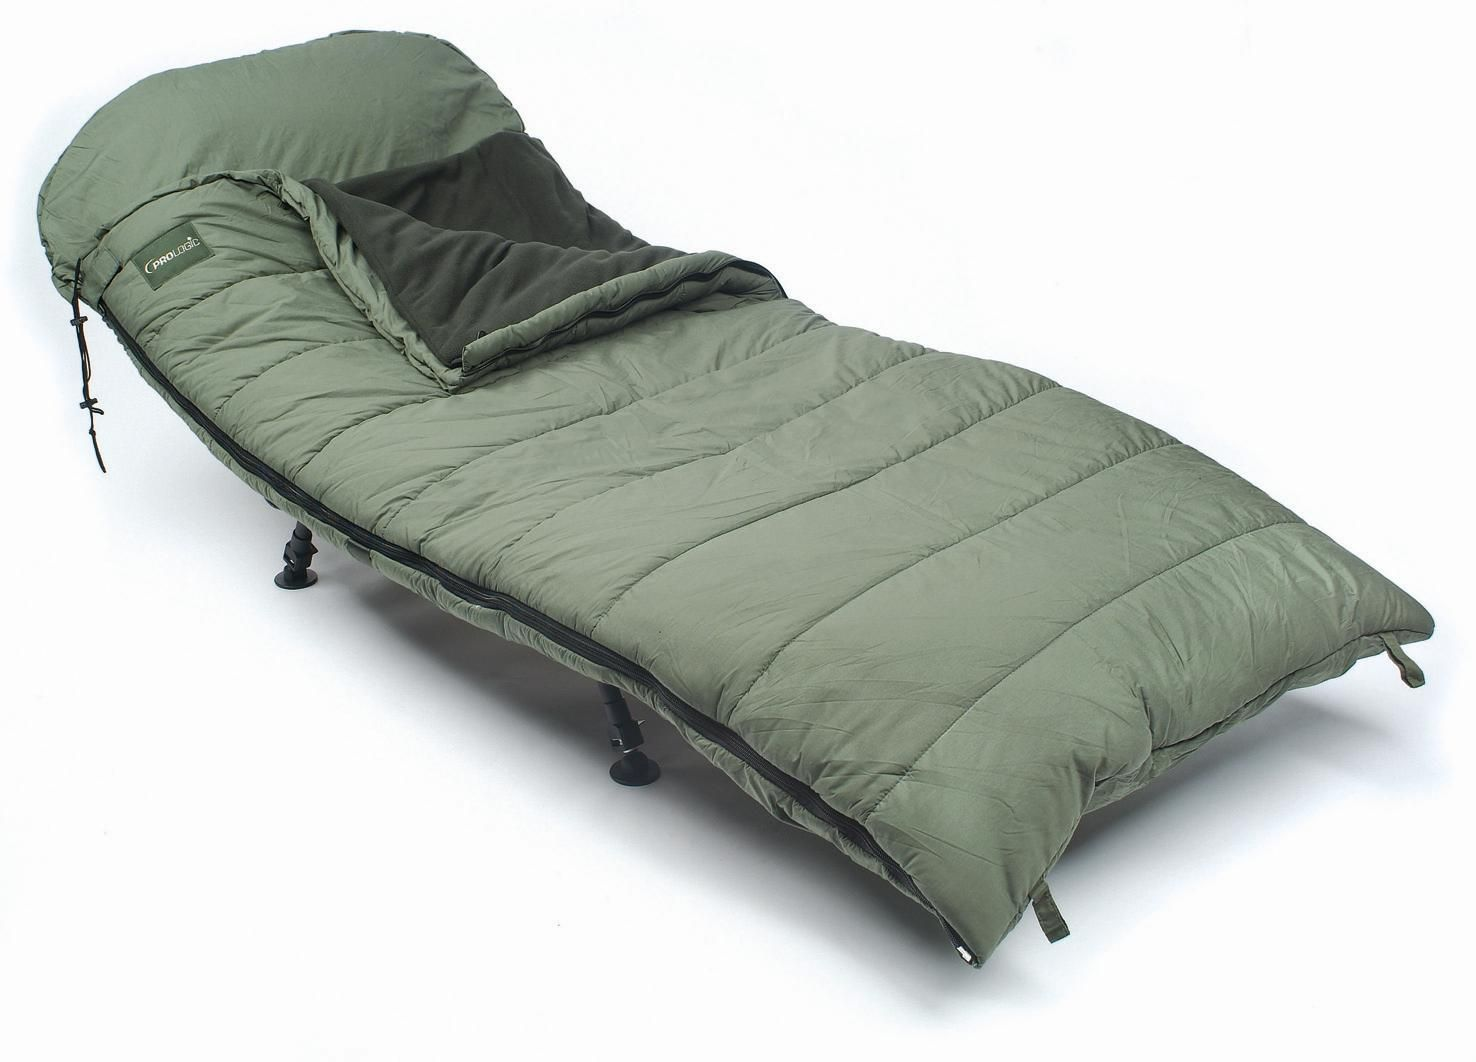 Heavy Duty Sleeping Bags Make Sure You Have A Few Of These